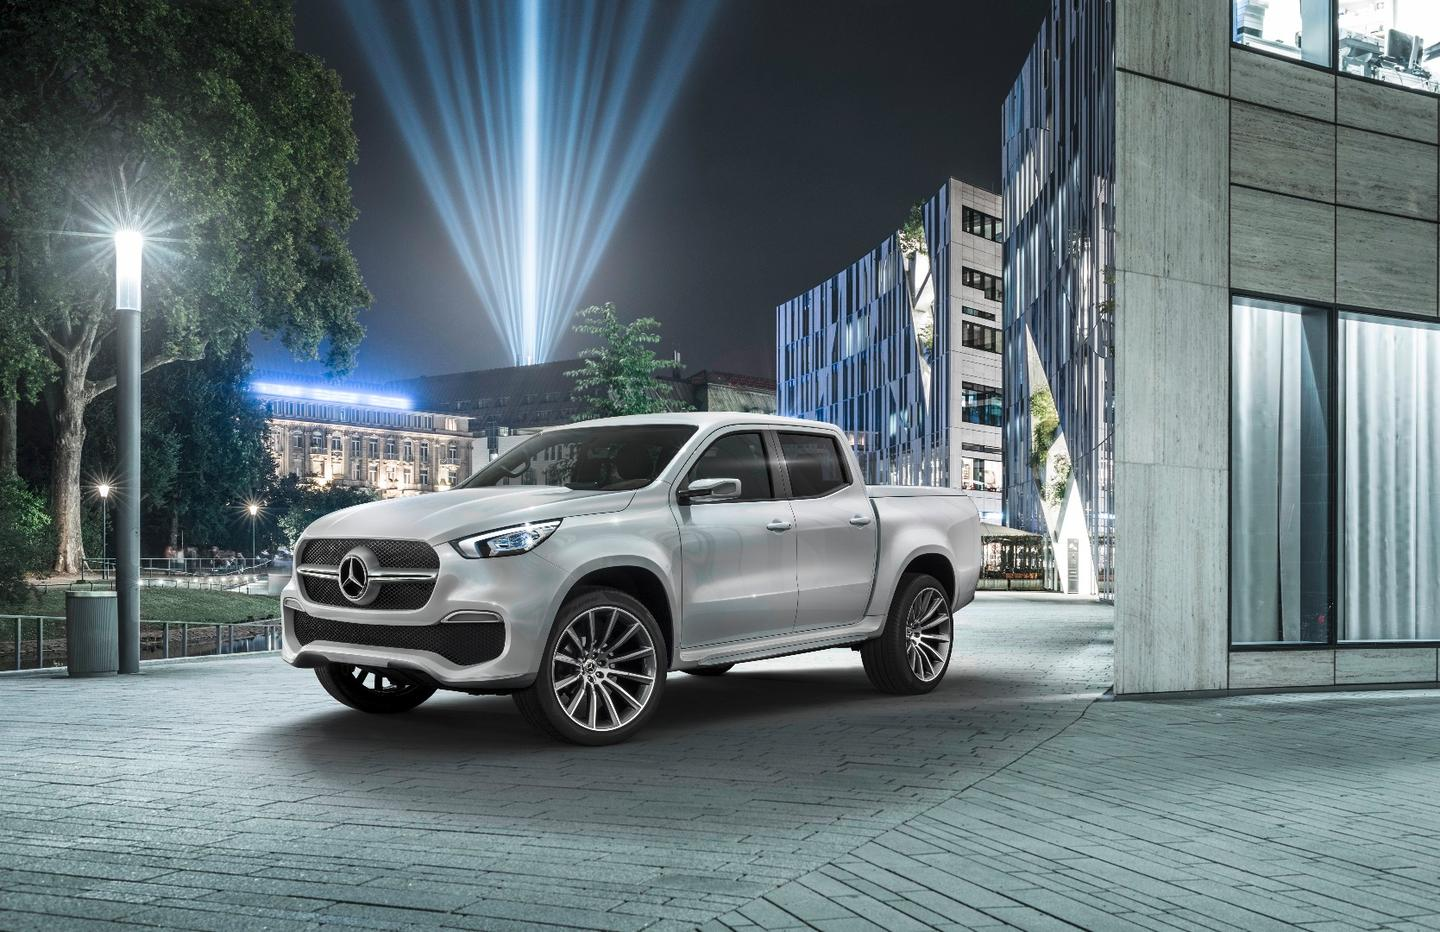 The Mercedes X-Class made its debut in Stockholm